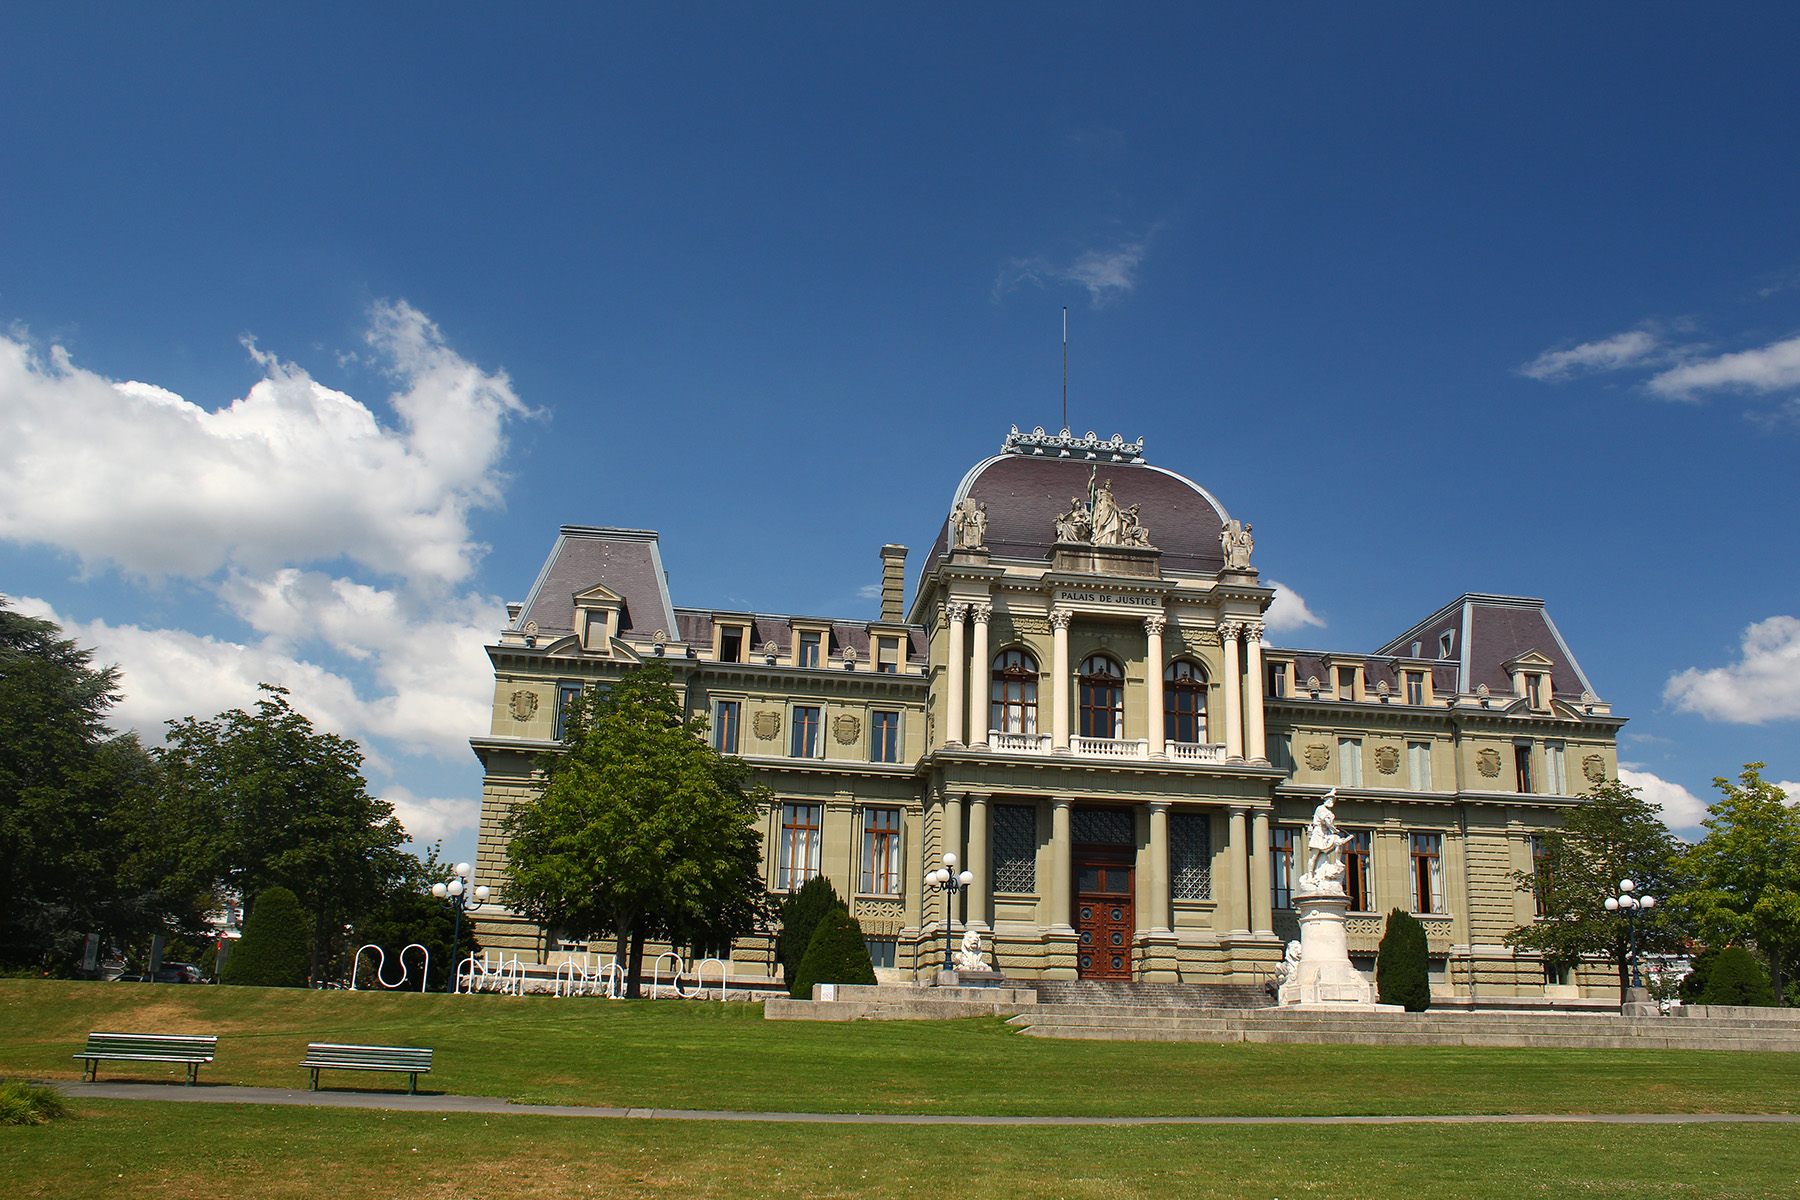 The Swiss Federal Court in Lausanne